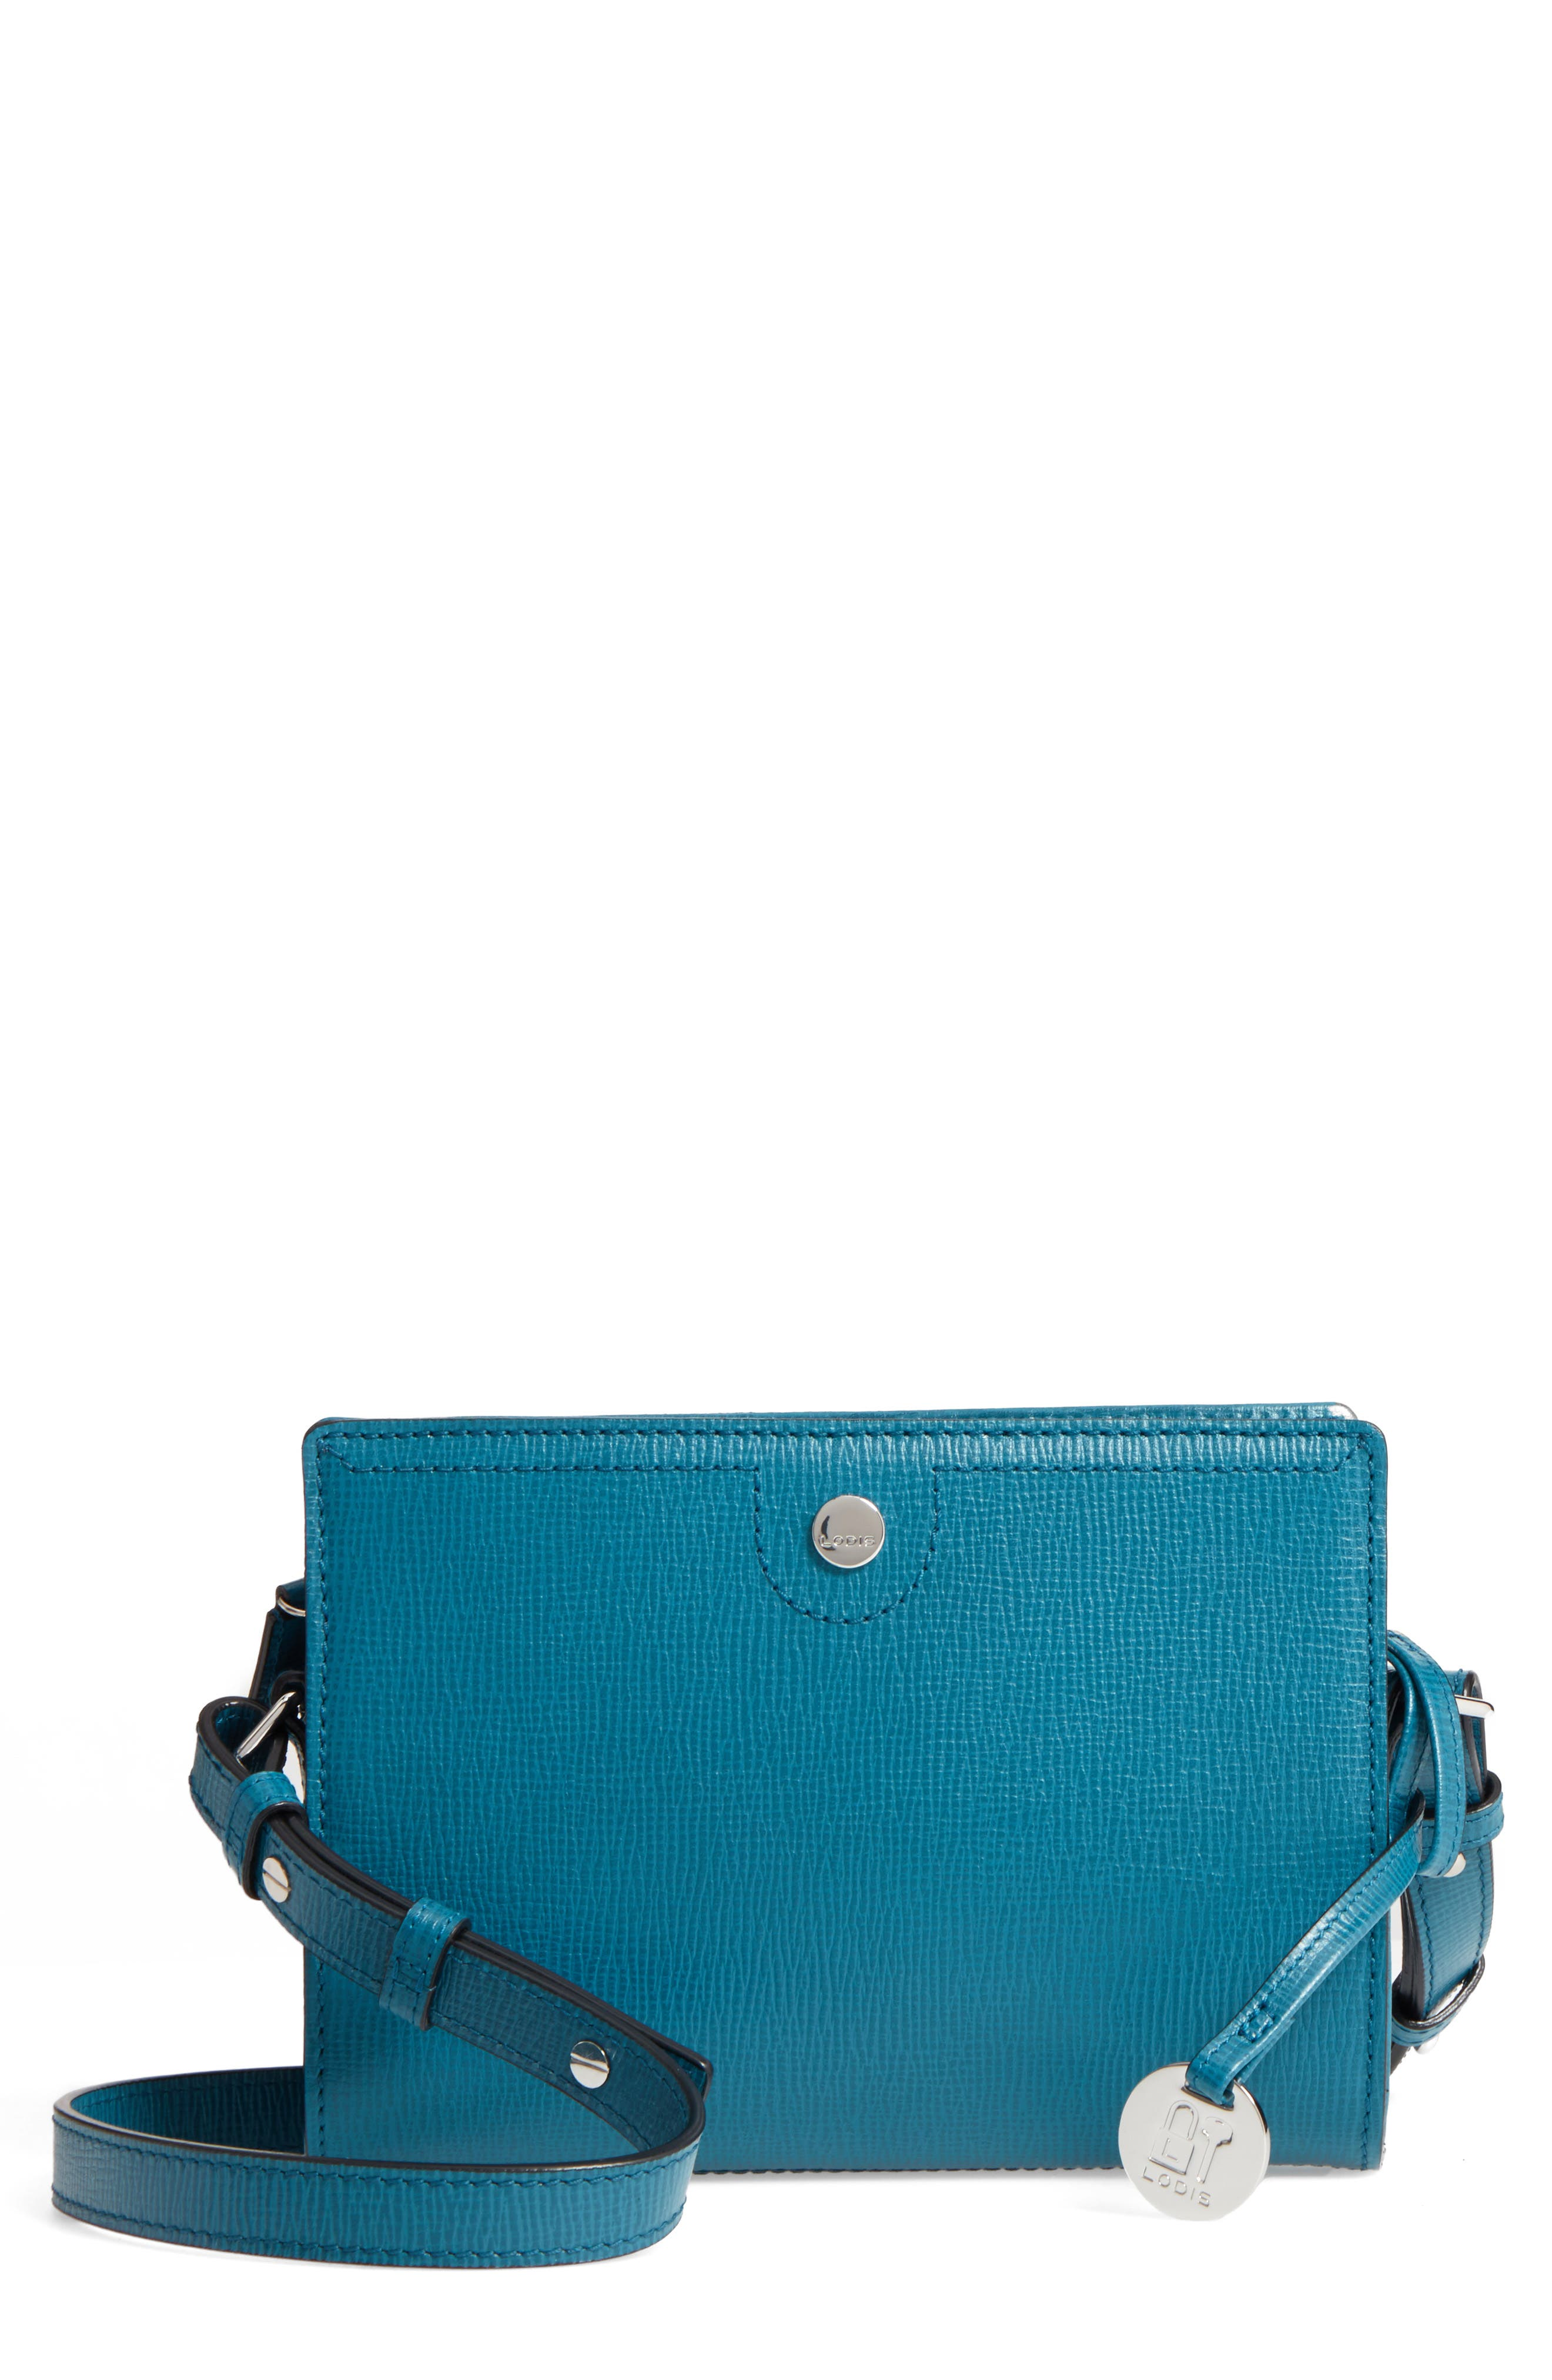 Main Image - LODIS Los Angeles Business Chic Pheobe RFID-Protected Leather Crossbody Bag